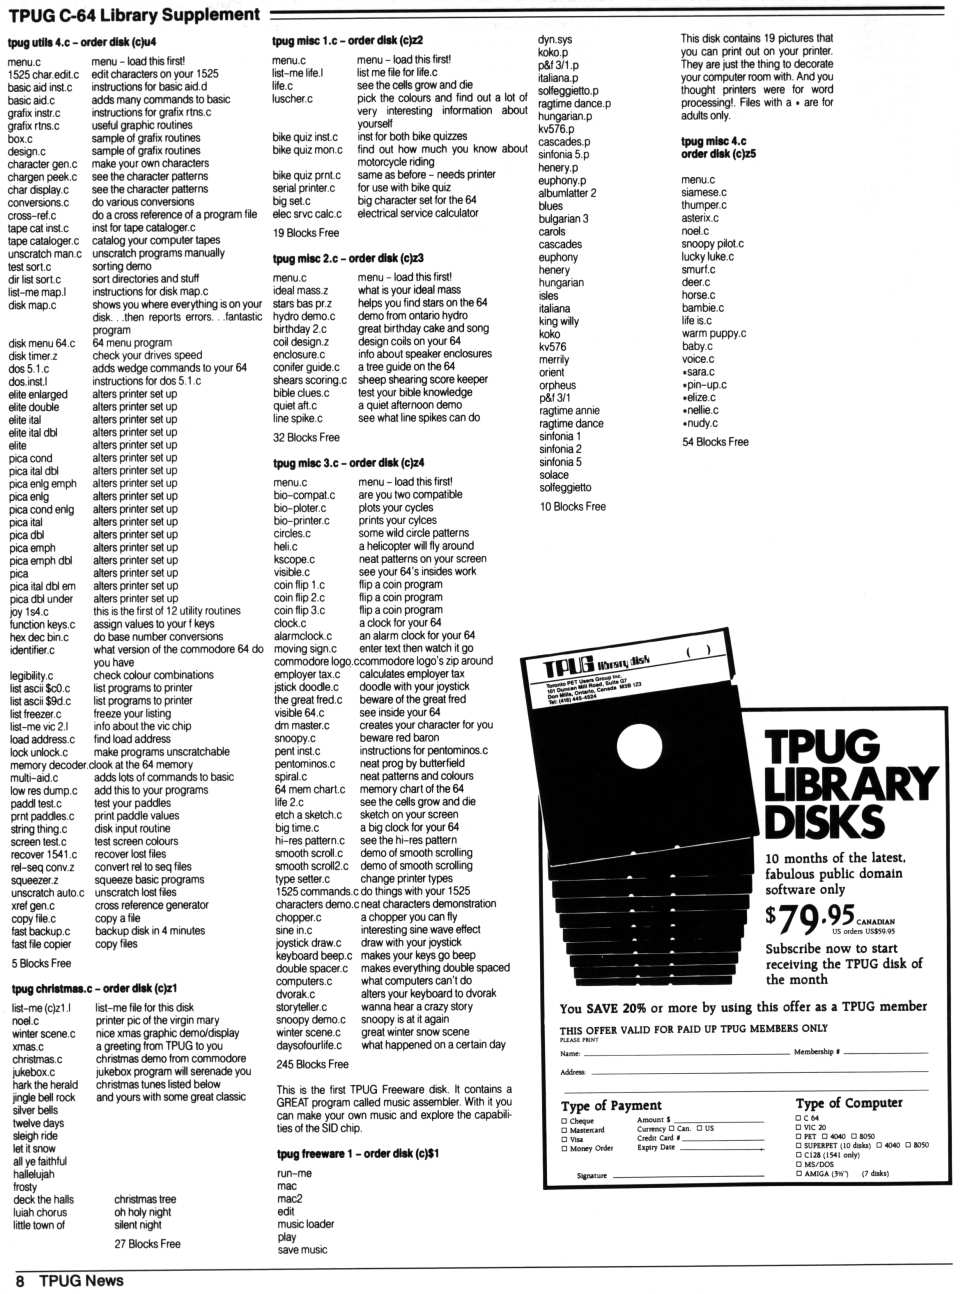 [TPUG News, Volume 1, Number 1, page 8  TPUG C-64 Library Supplement (4/4)]